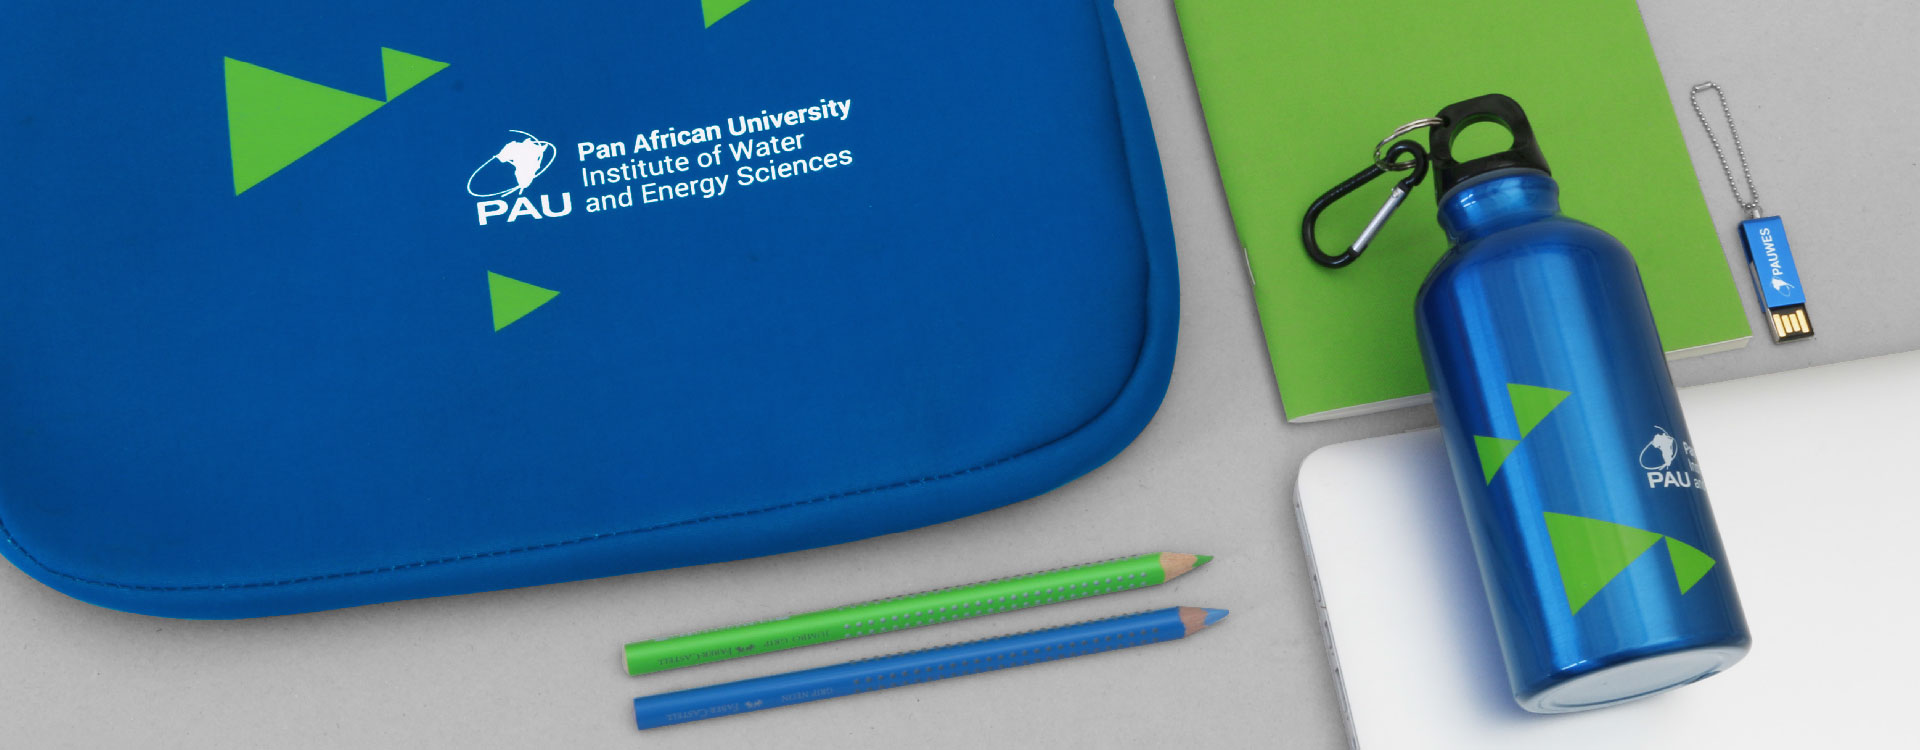 Inside of Student Guide of the Pan African University, Institute of Water and Energy Sciences PAUWES; Design: Kattrin Richter | Graphic Design Studio